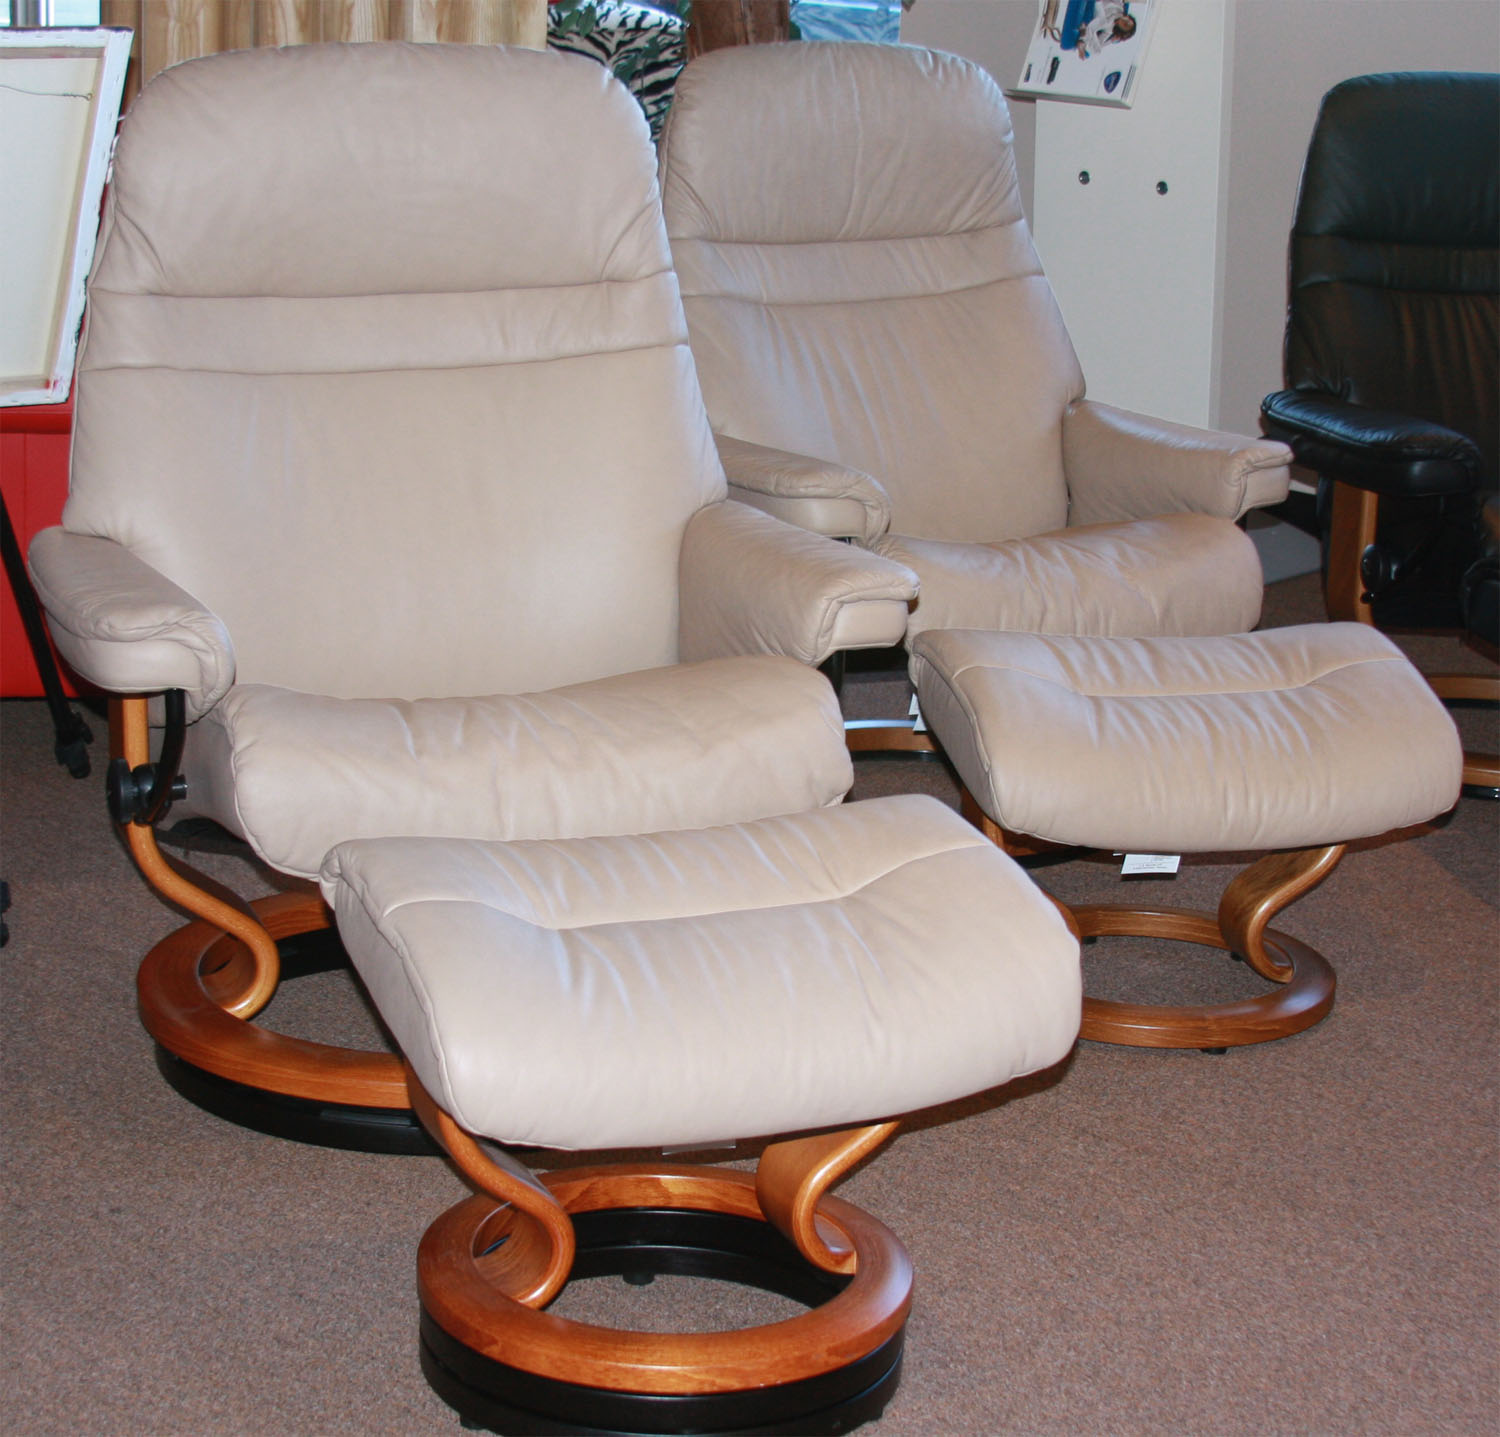 Stressless Ekornes Sessel Stressless Sunrise Recliner Chair And Ottoman